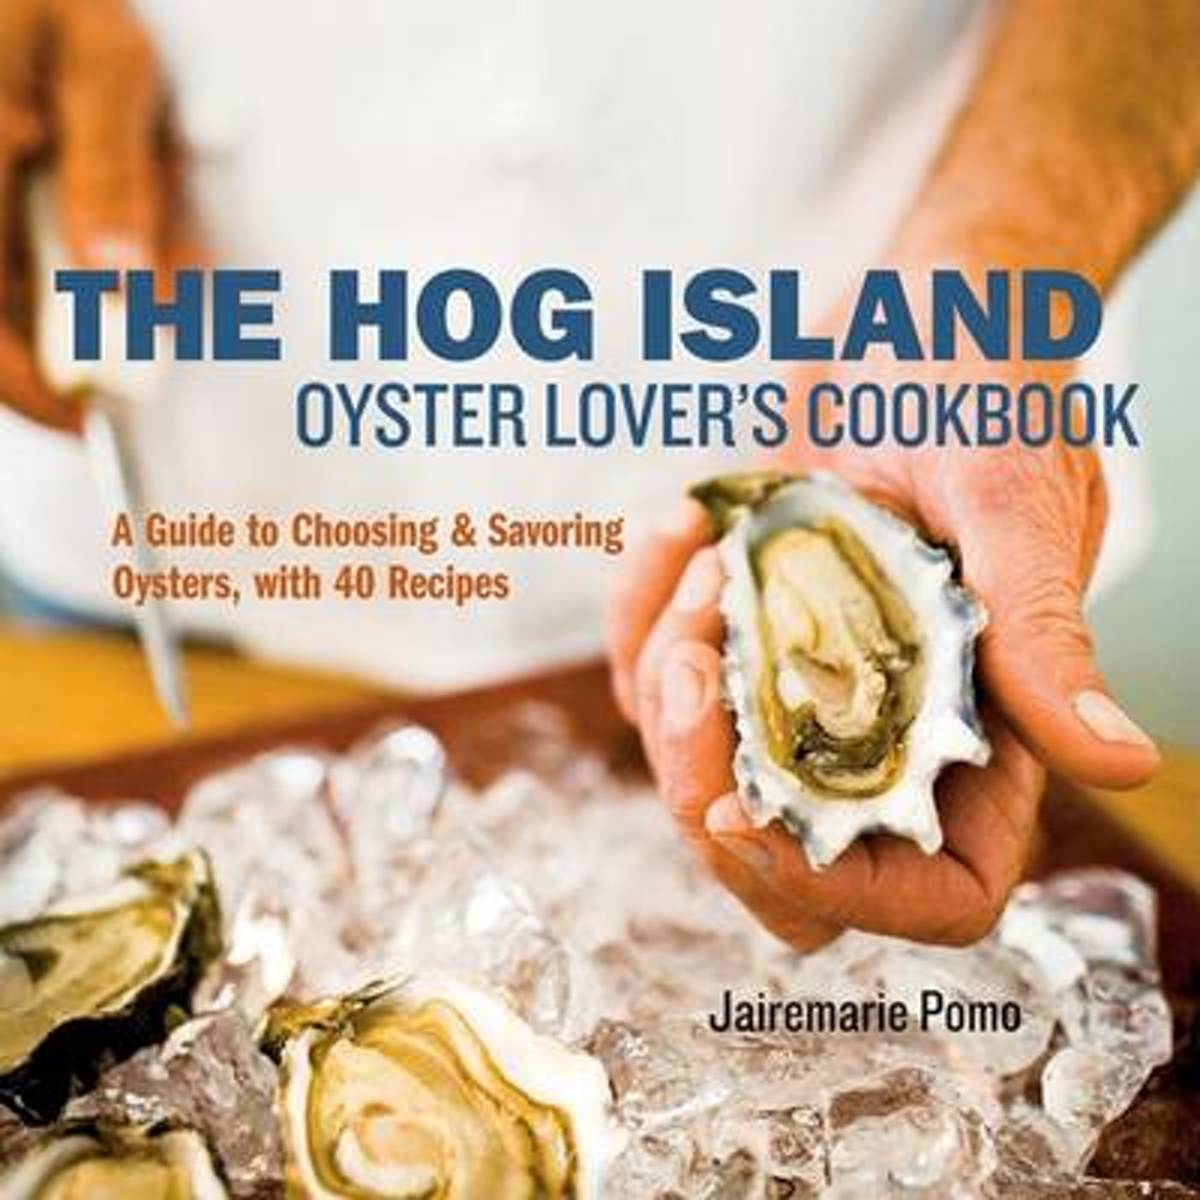 The Hog Island Oyster Lovers Cookbookparing and Enjoying Oysters